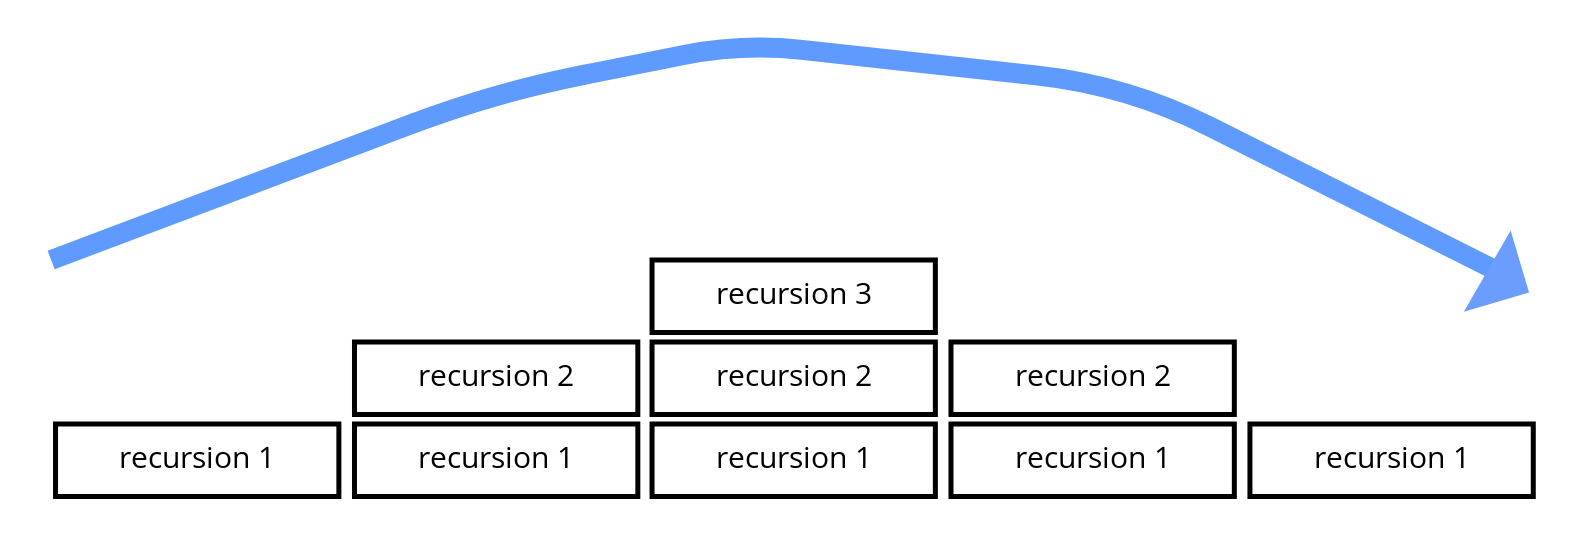 Illustration of recursion call stack